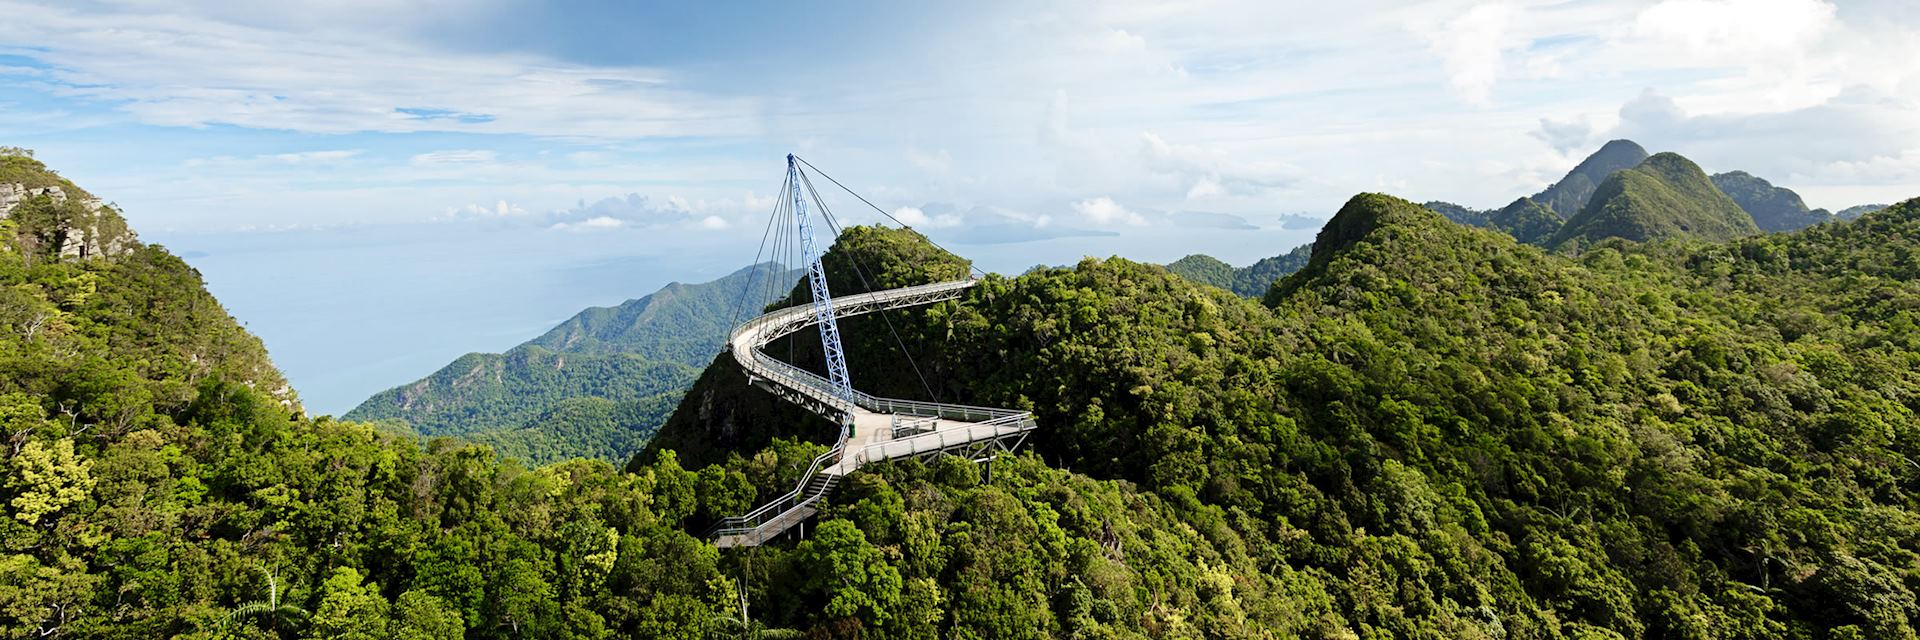 Skybridge on the island of Langkawi